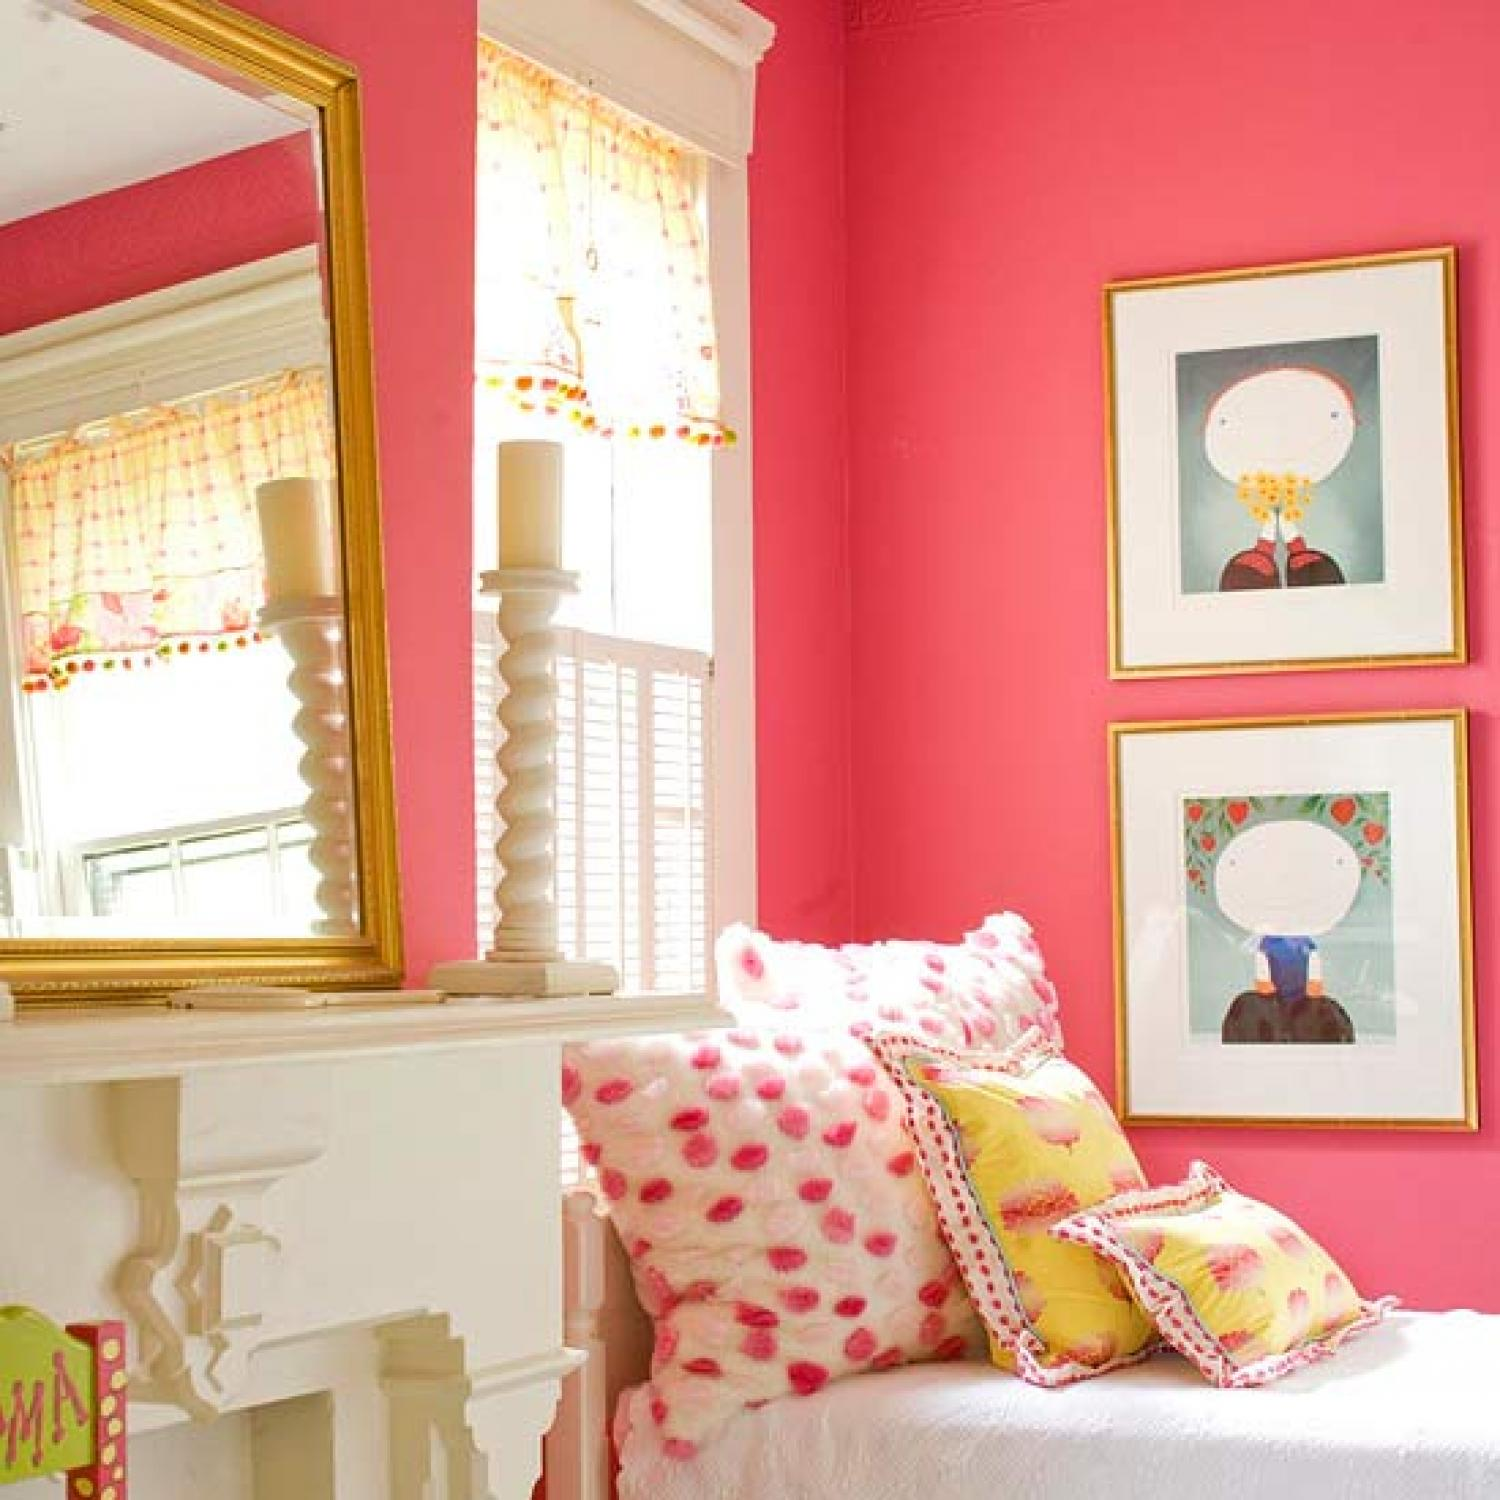 Bedroom Decorating Ideas: Bedroom Decorating Ideas: Young Children